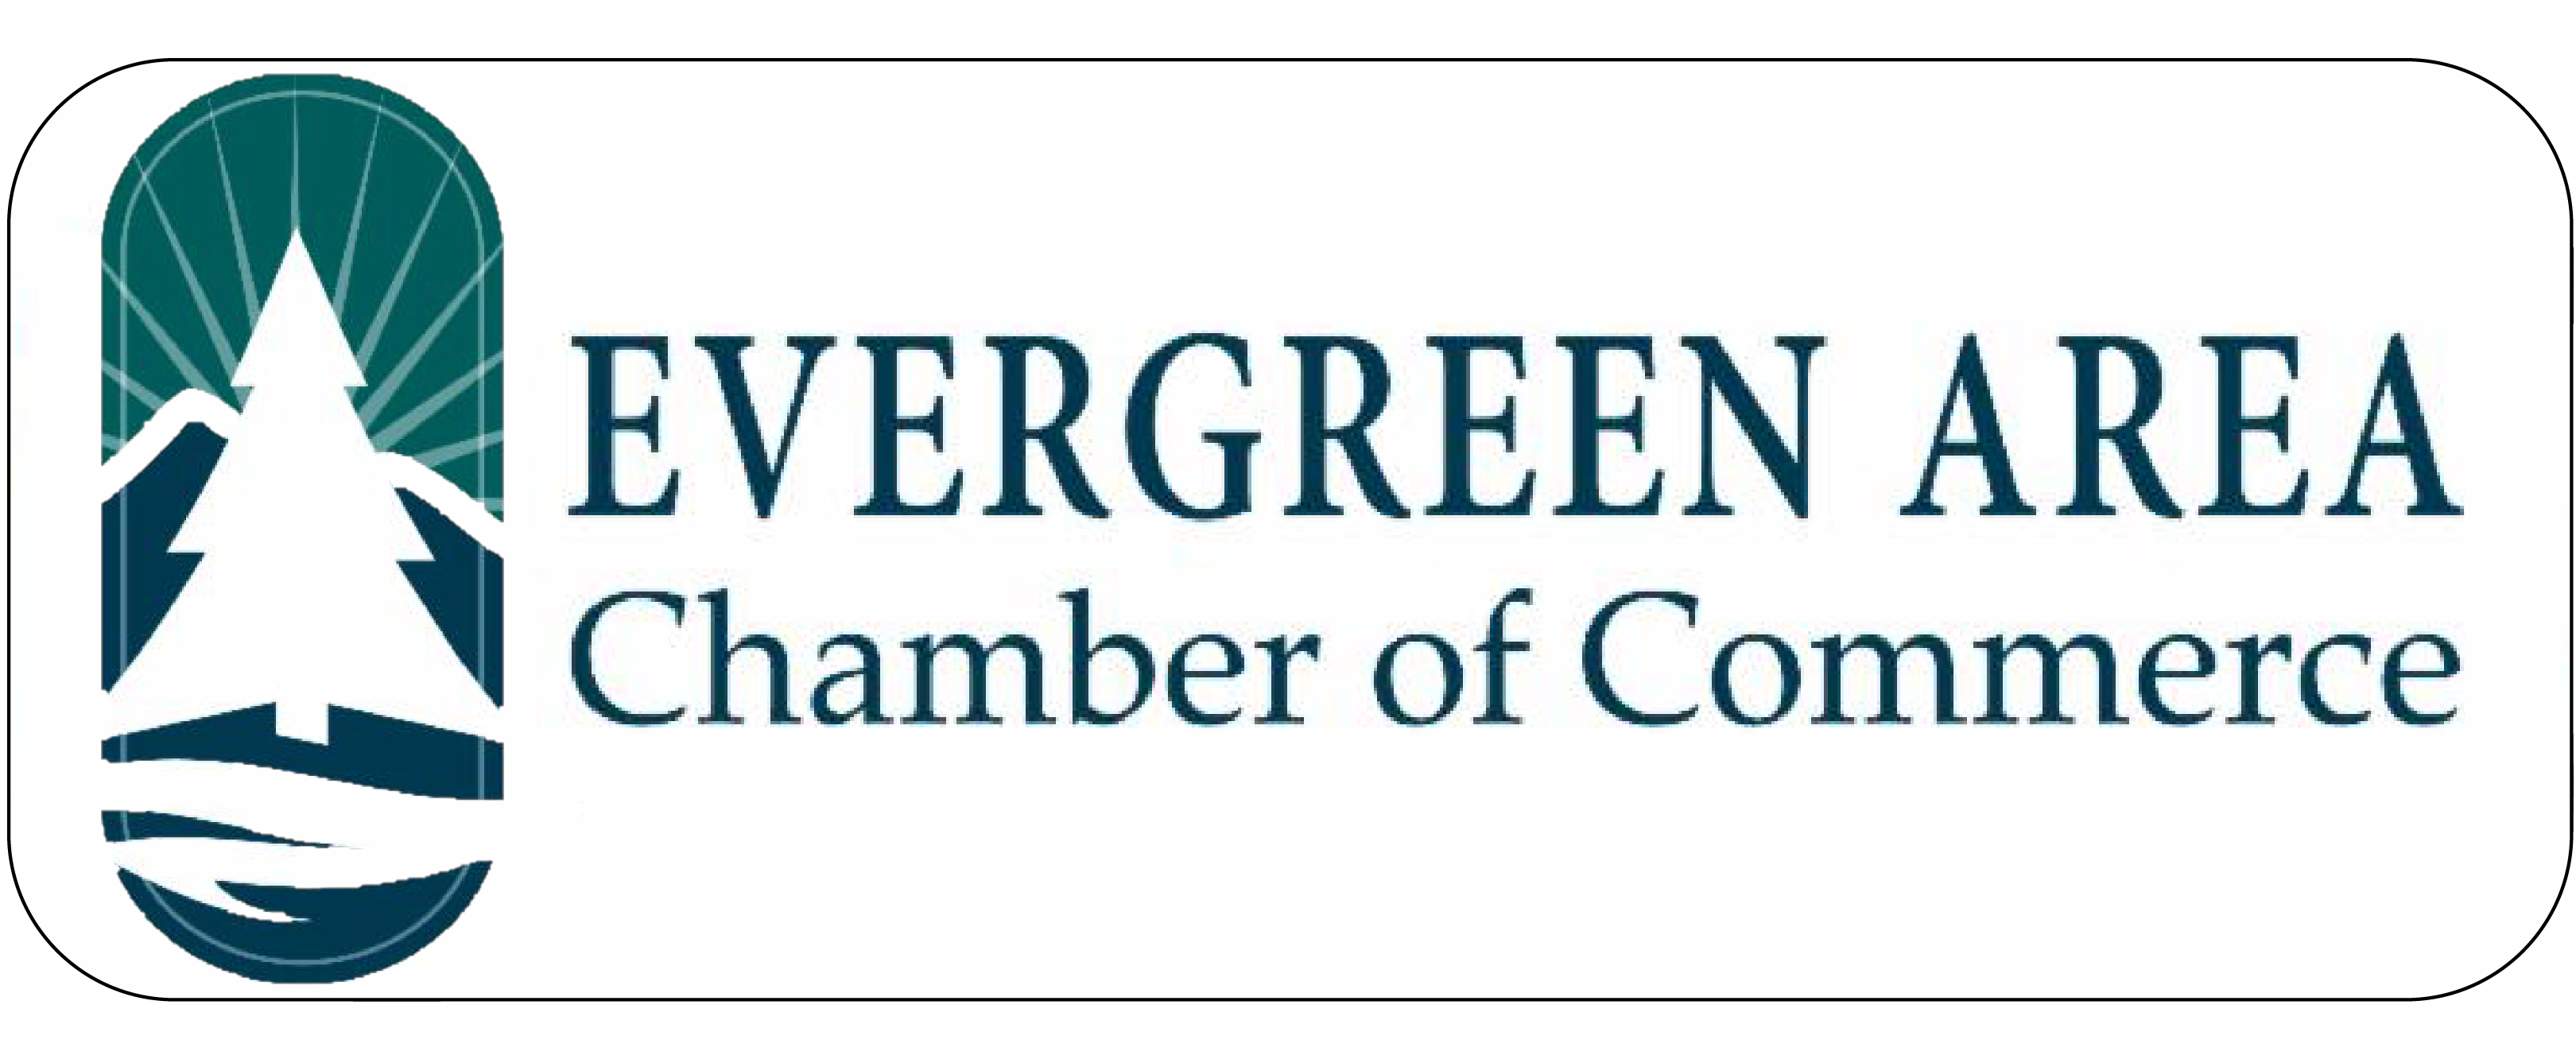 Evergreen Chamber of Commerce